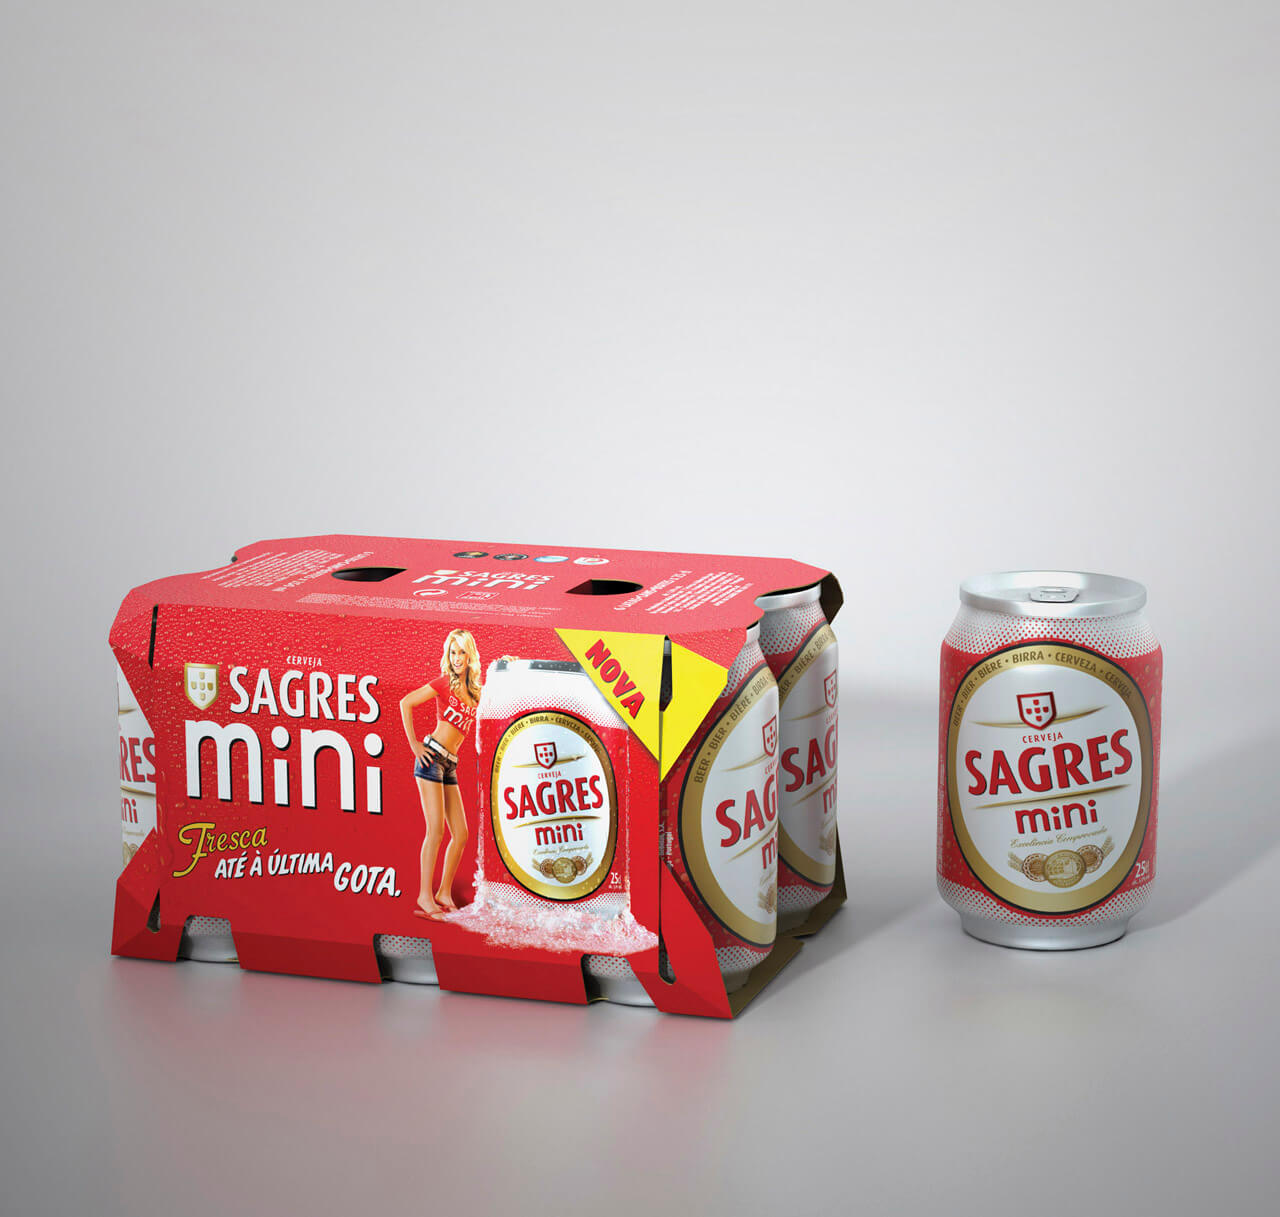 CGI product images of lager drinks packaging